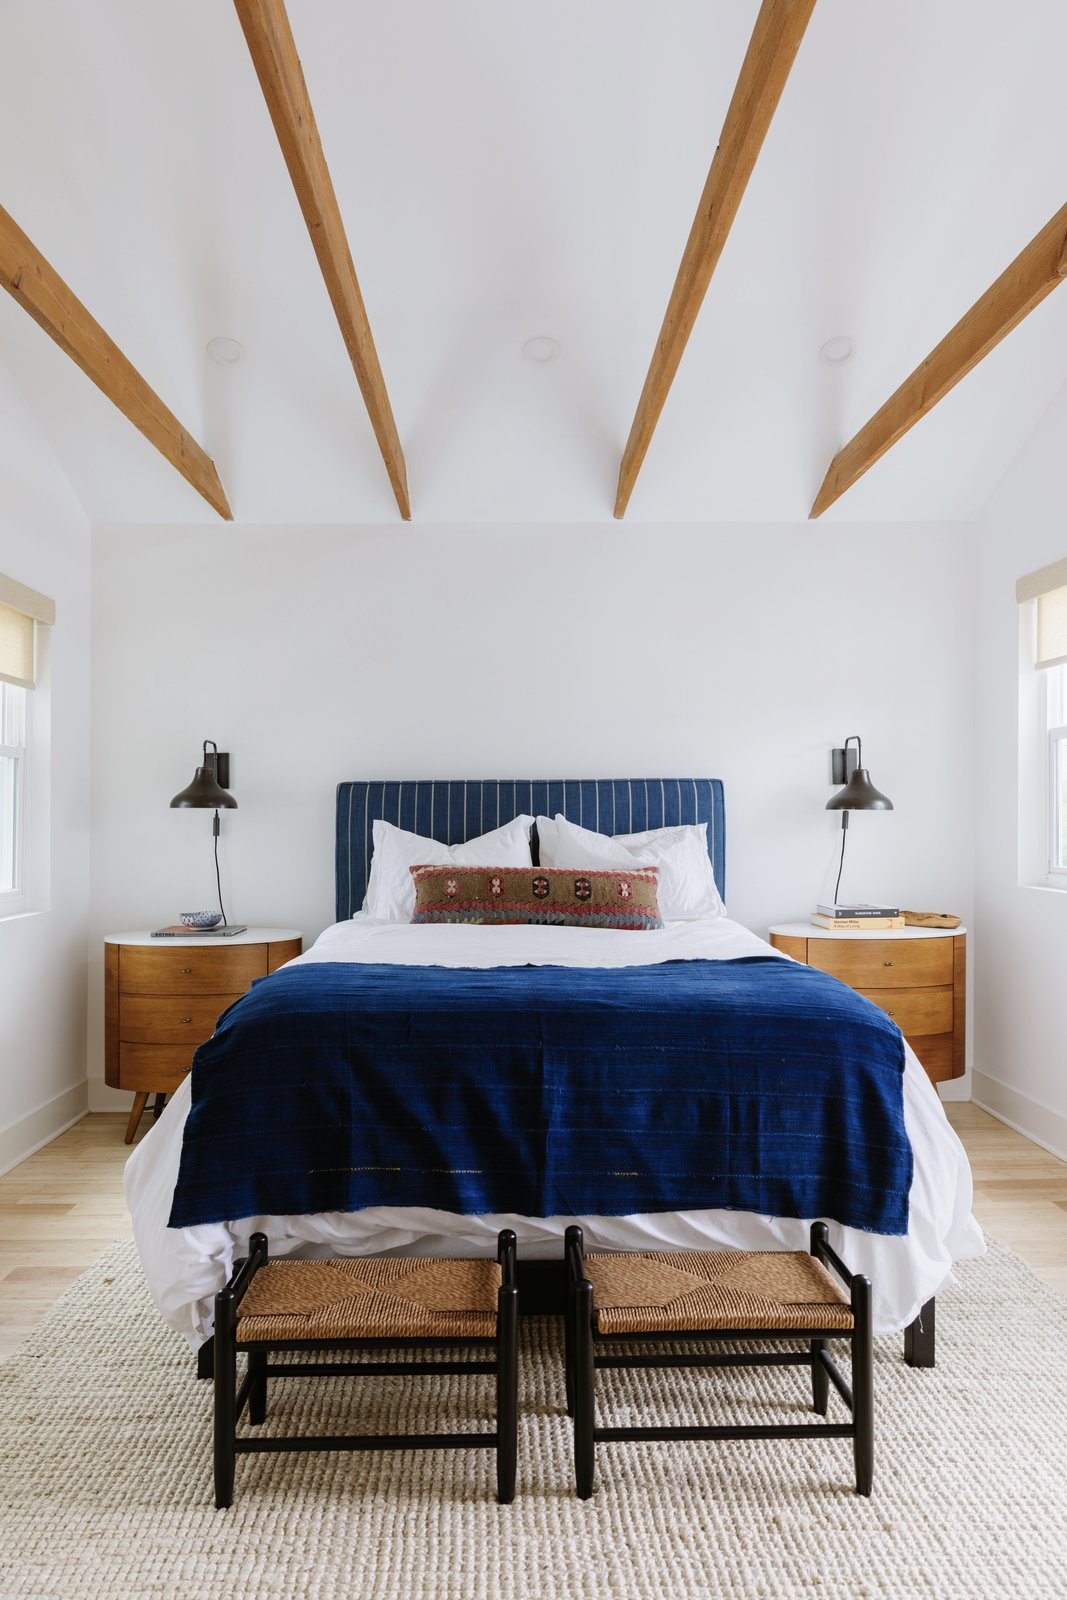 Bedroom, Night Stands, Light Hardwood Floor, Bed, Bench, and Wall Lighting Wooden beams delicately span a gabled ceiling in the guest bedroom.  Photos from A Young Couple Revamp Adam Levine's Childhood Home